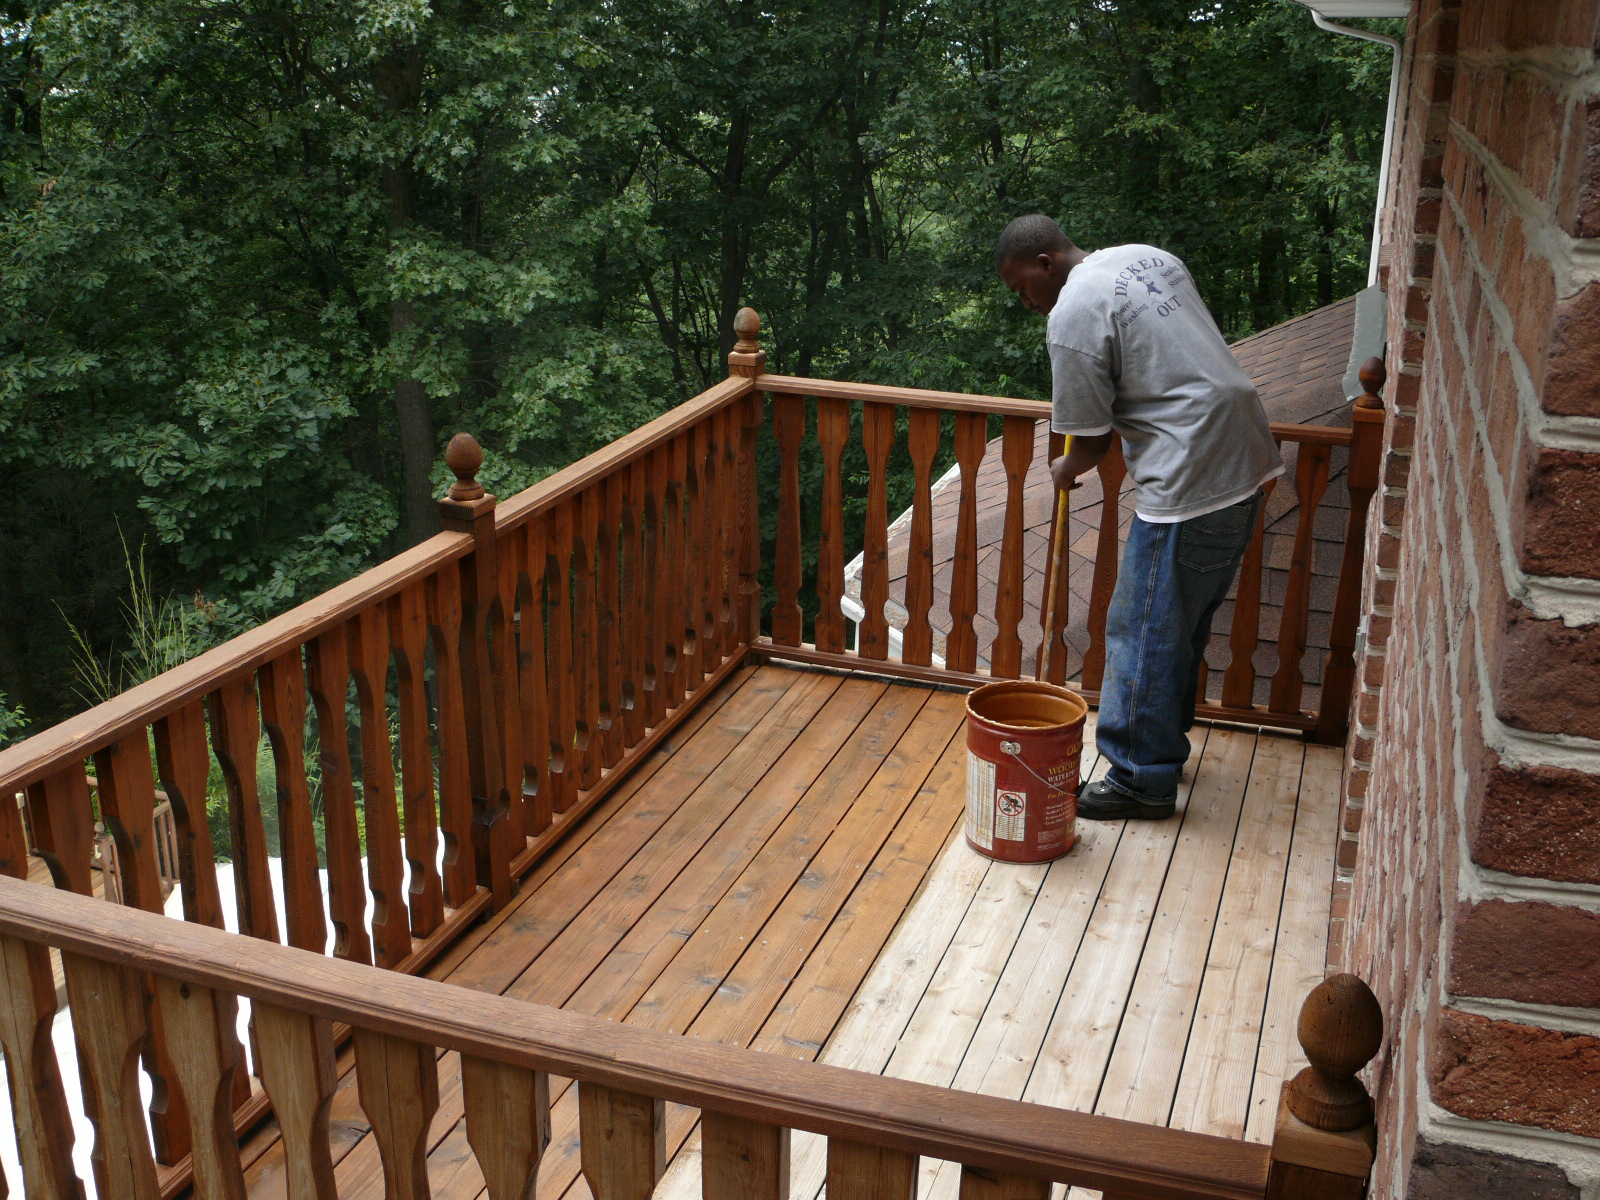 Deck staining by hand using a brush.